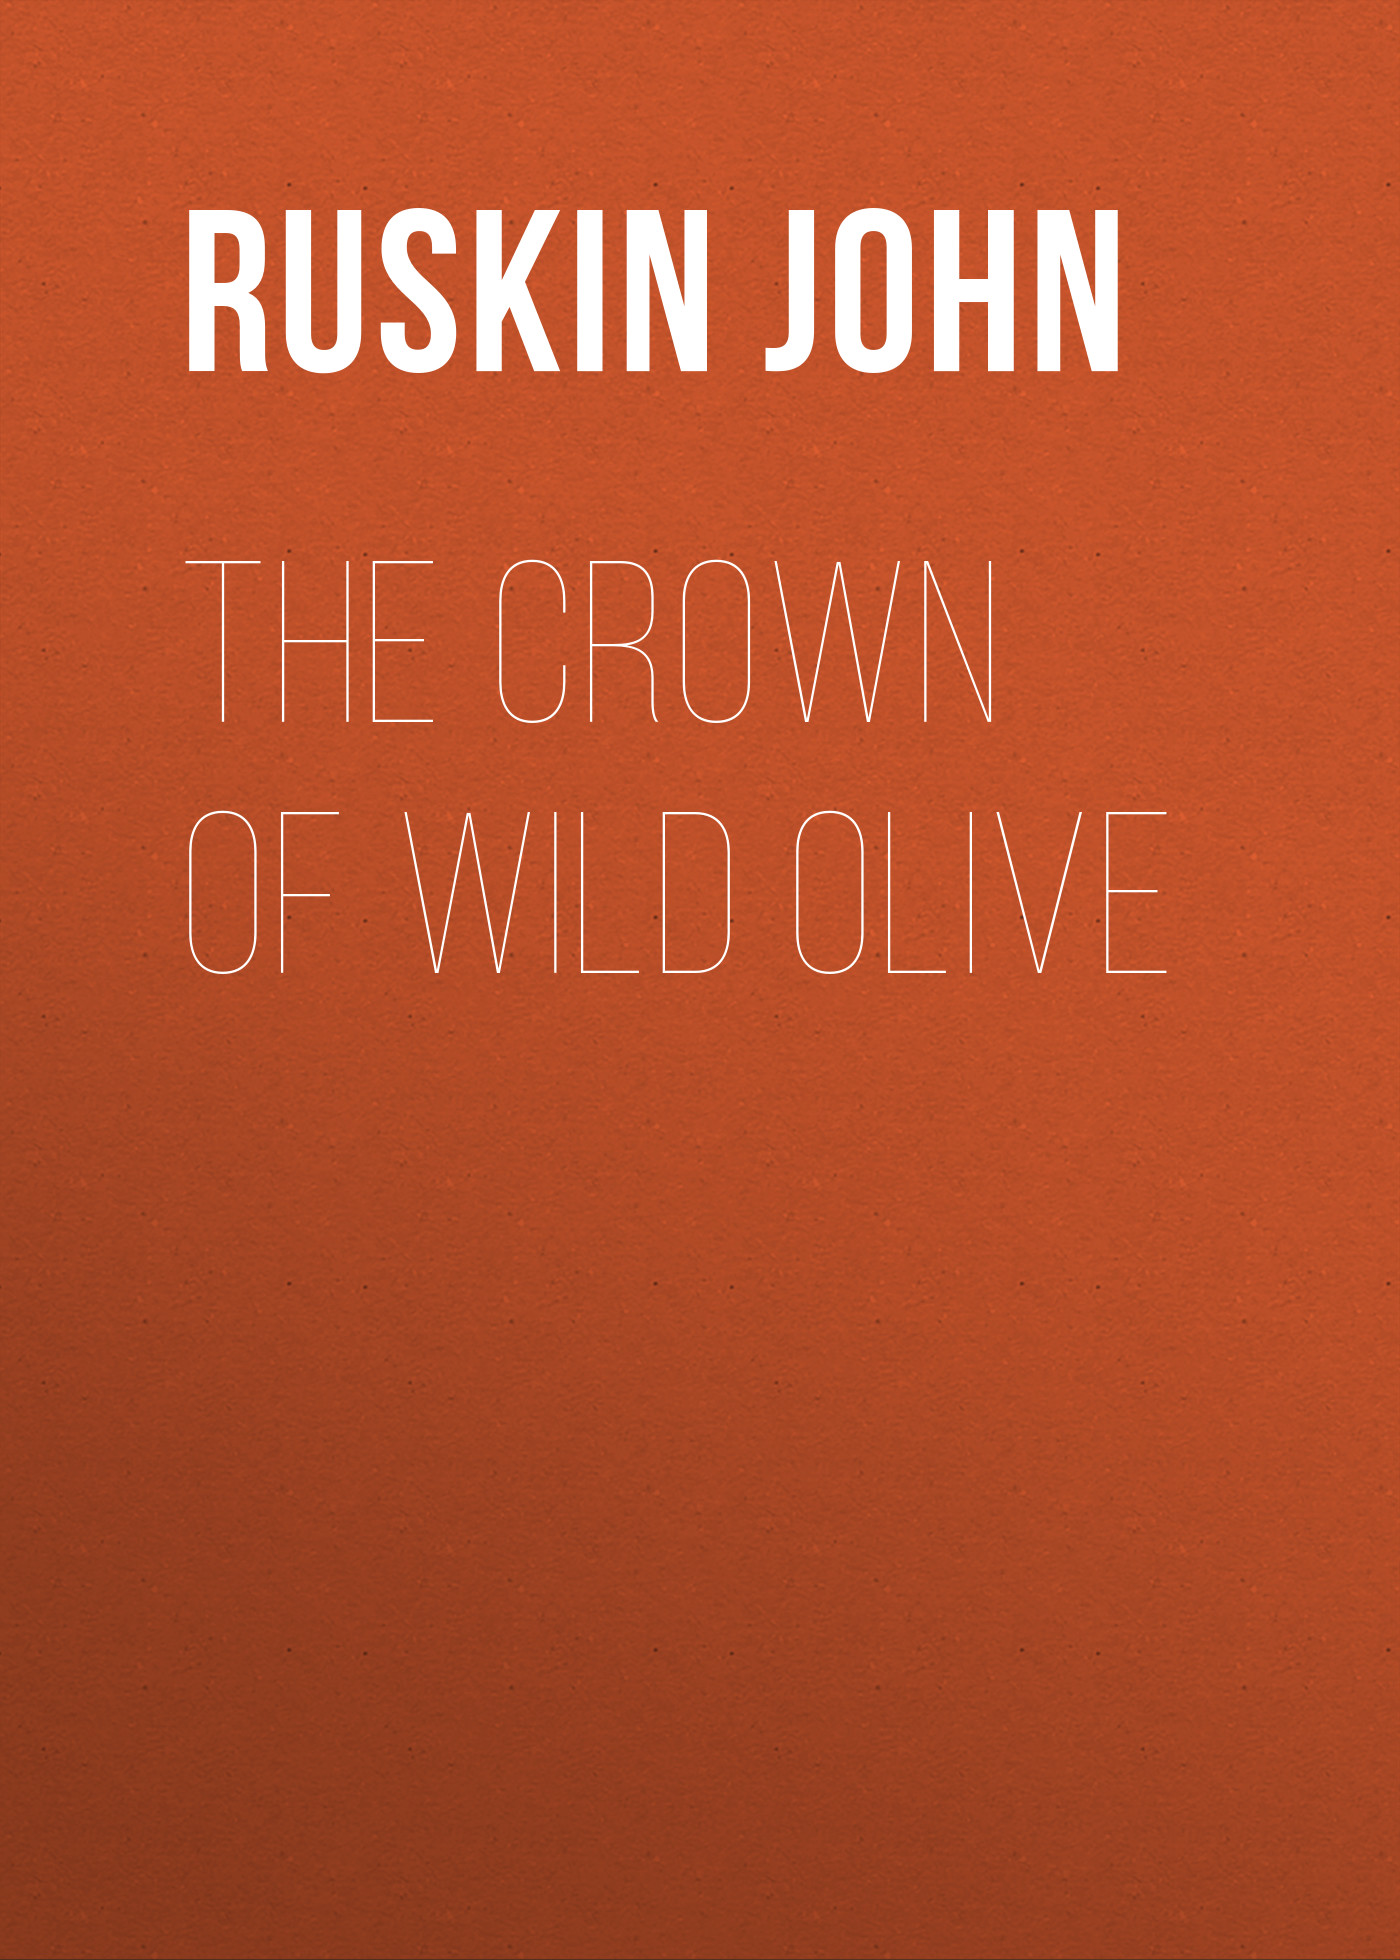 Ruskin John The Crown of Wild Olive john ruskin the thoughts of john ruskin